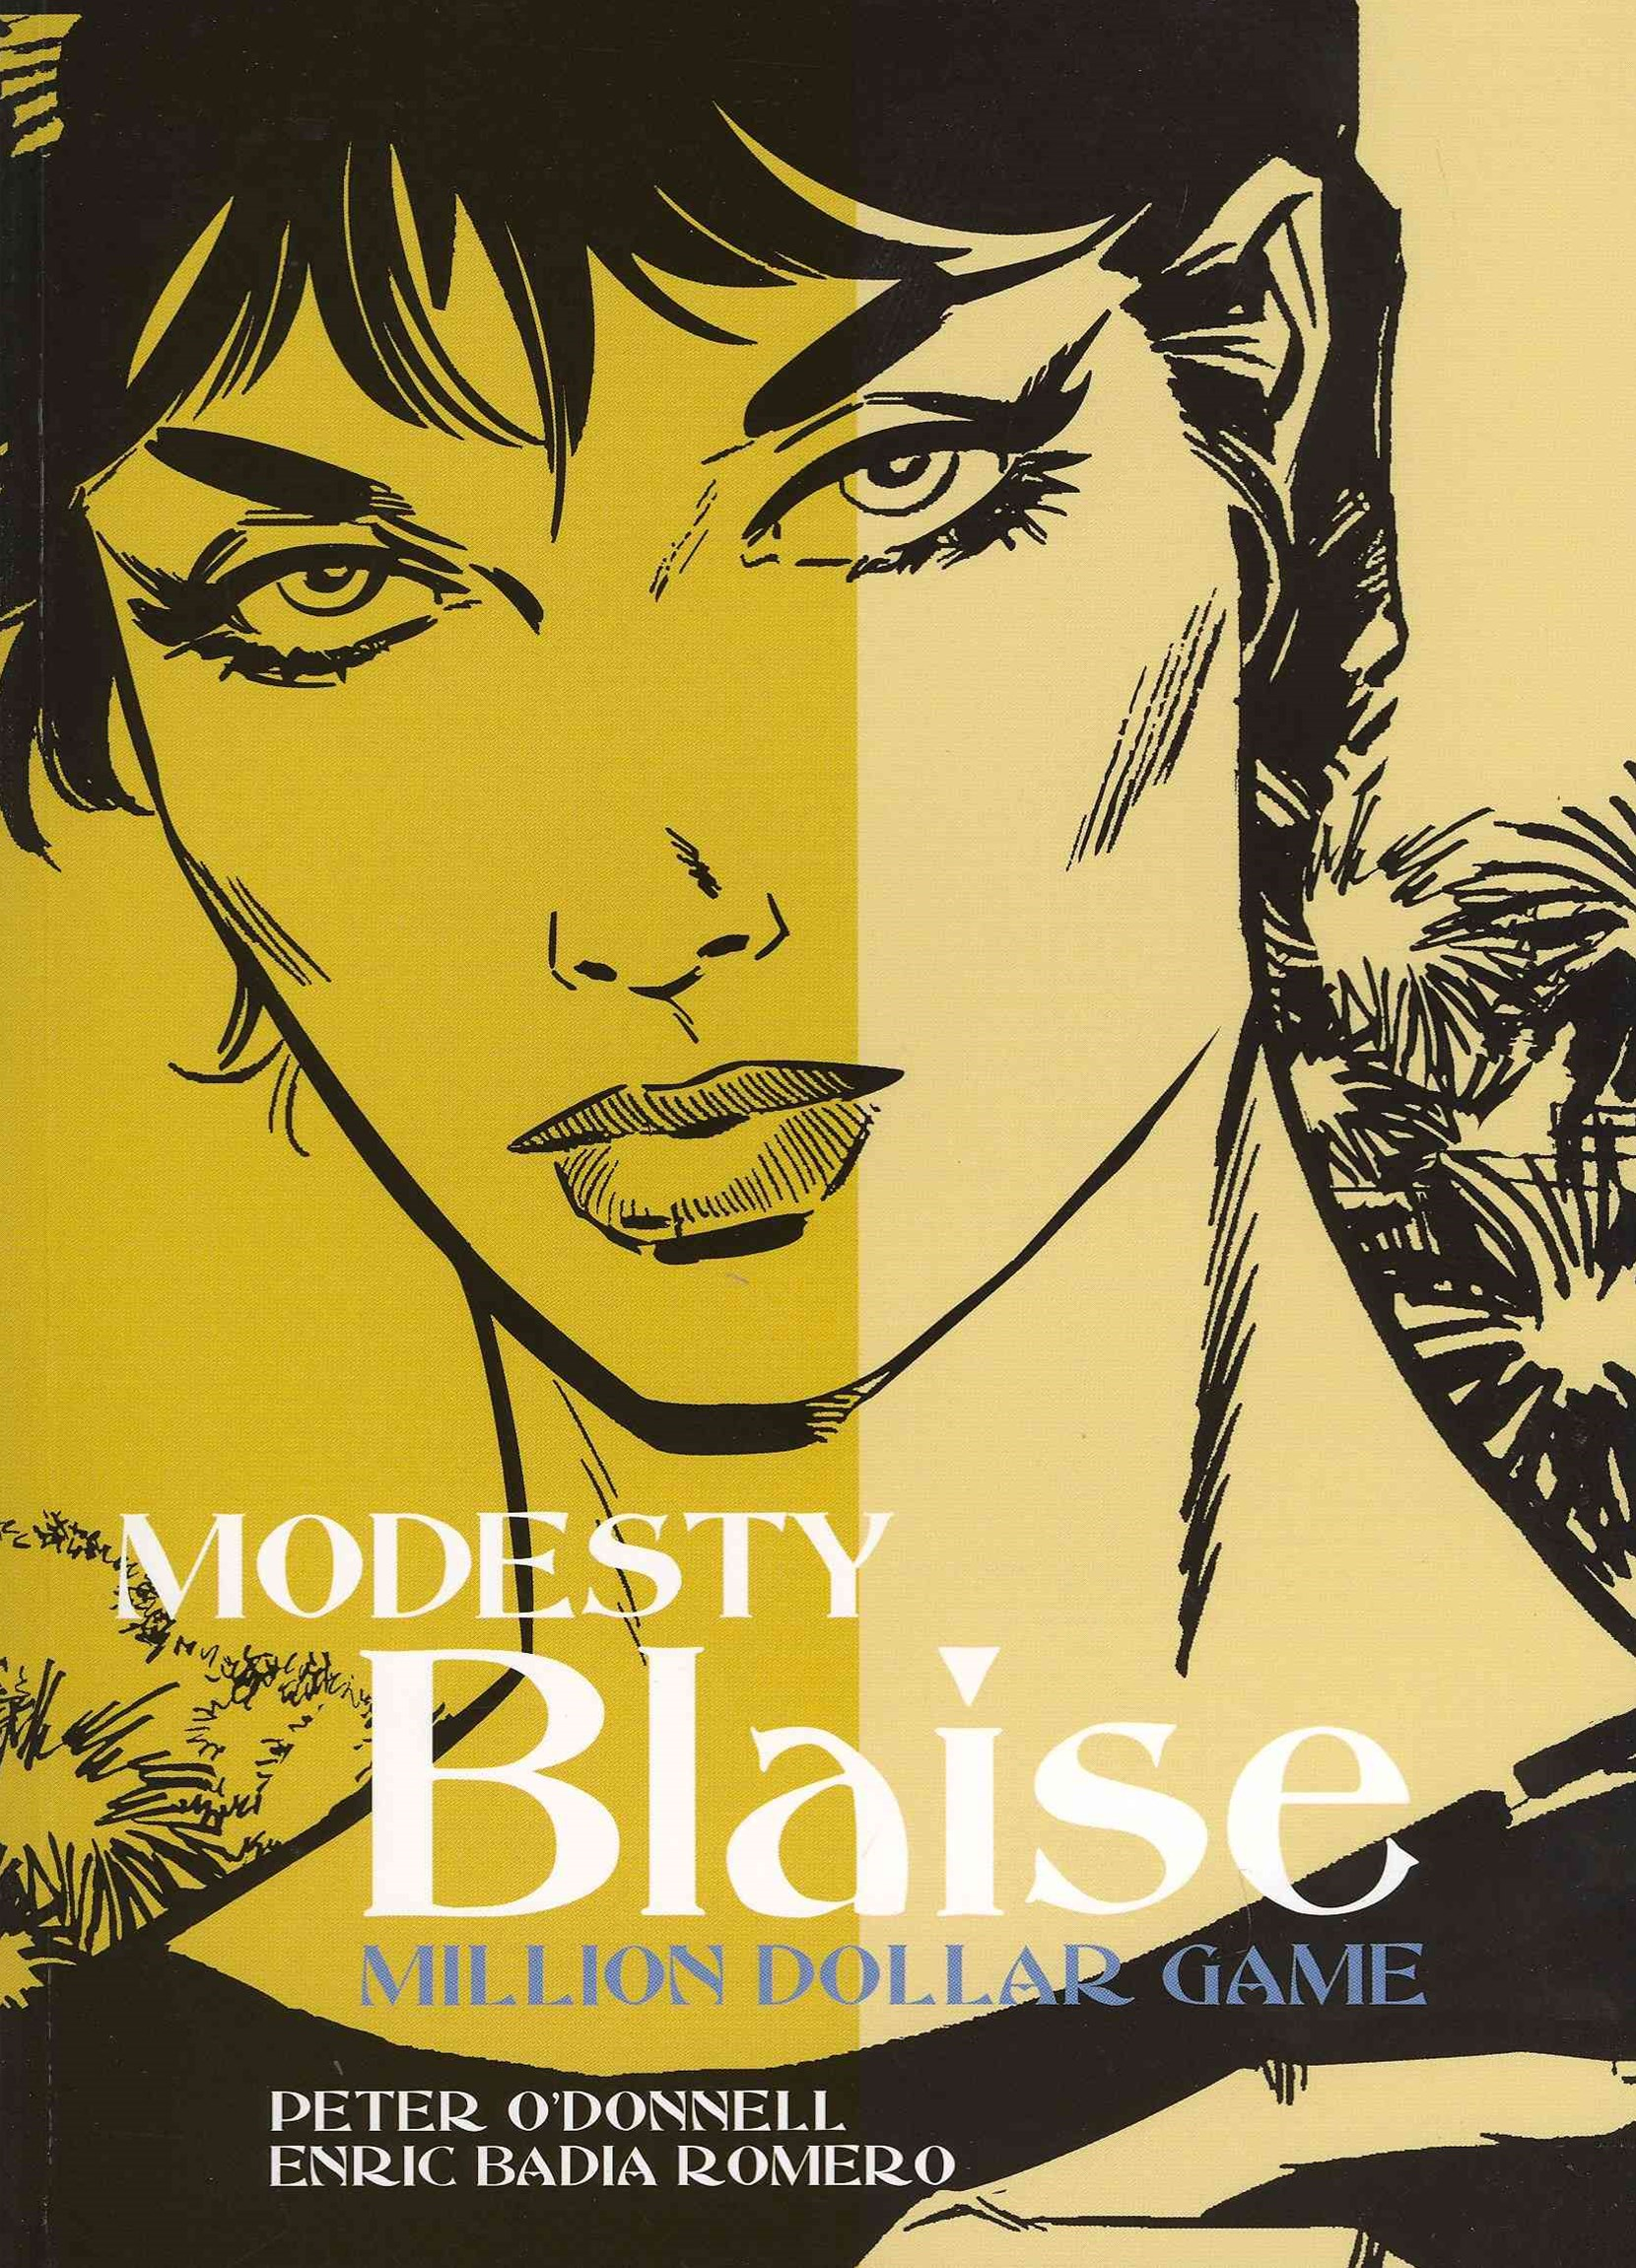 Modesty Blaise - Million Dollar Game